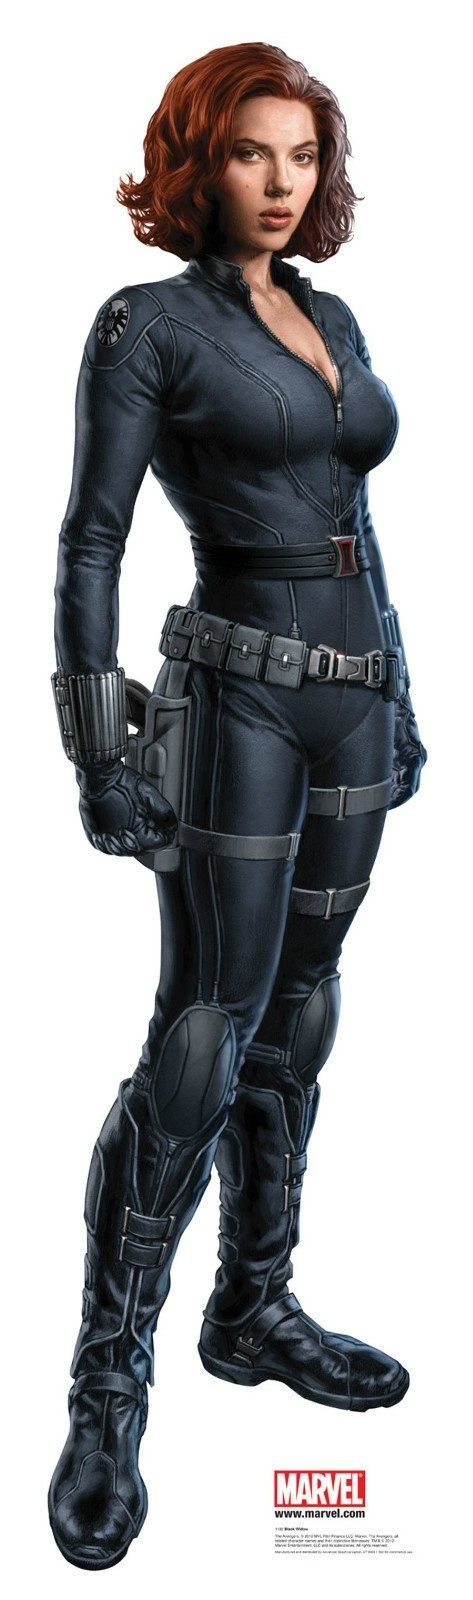 Avengers  - Black Widow This the theme for christmas ( super heros) and ichose blck widow